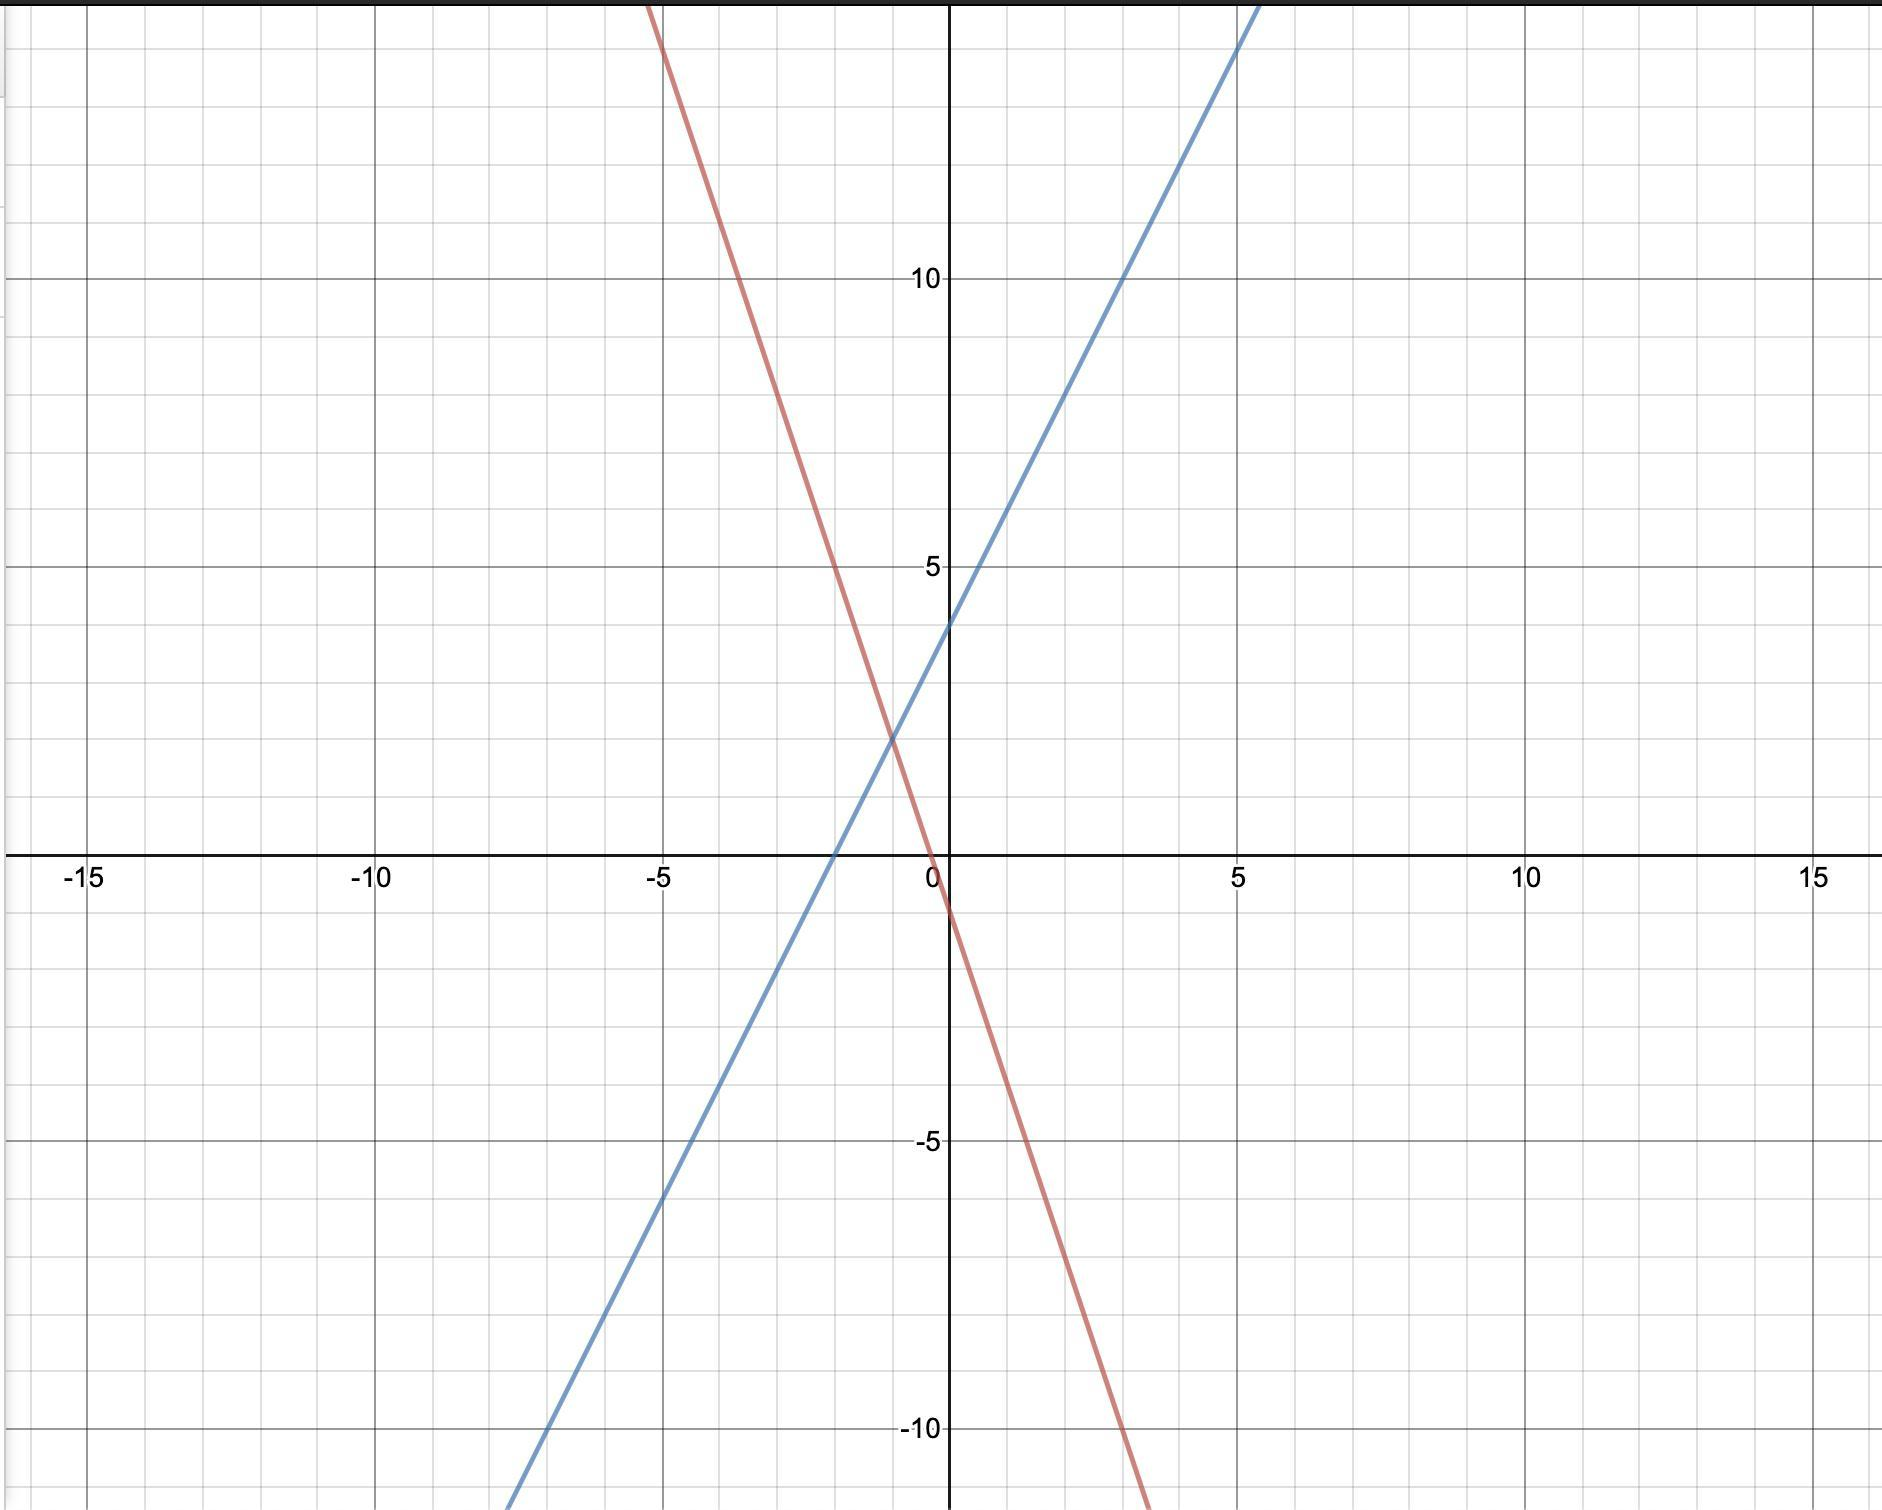 Solve The System Of Linear Equations By Graphing 9x 3y